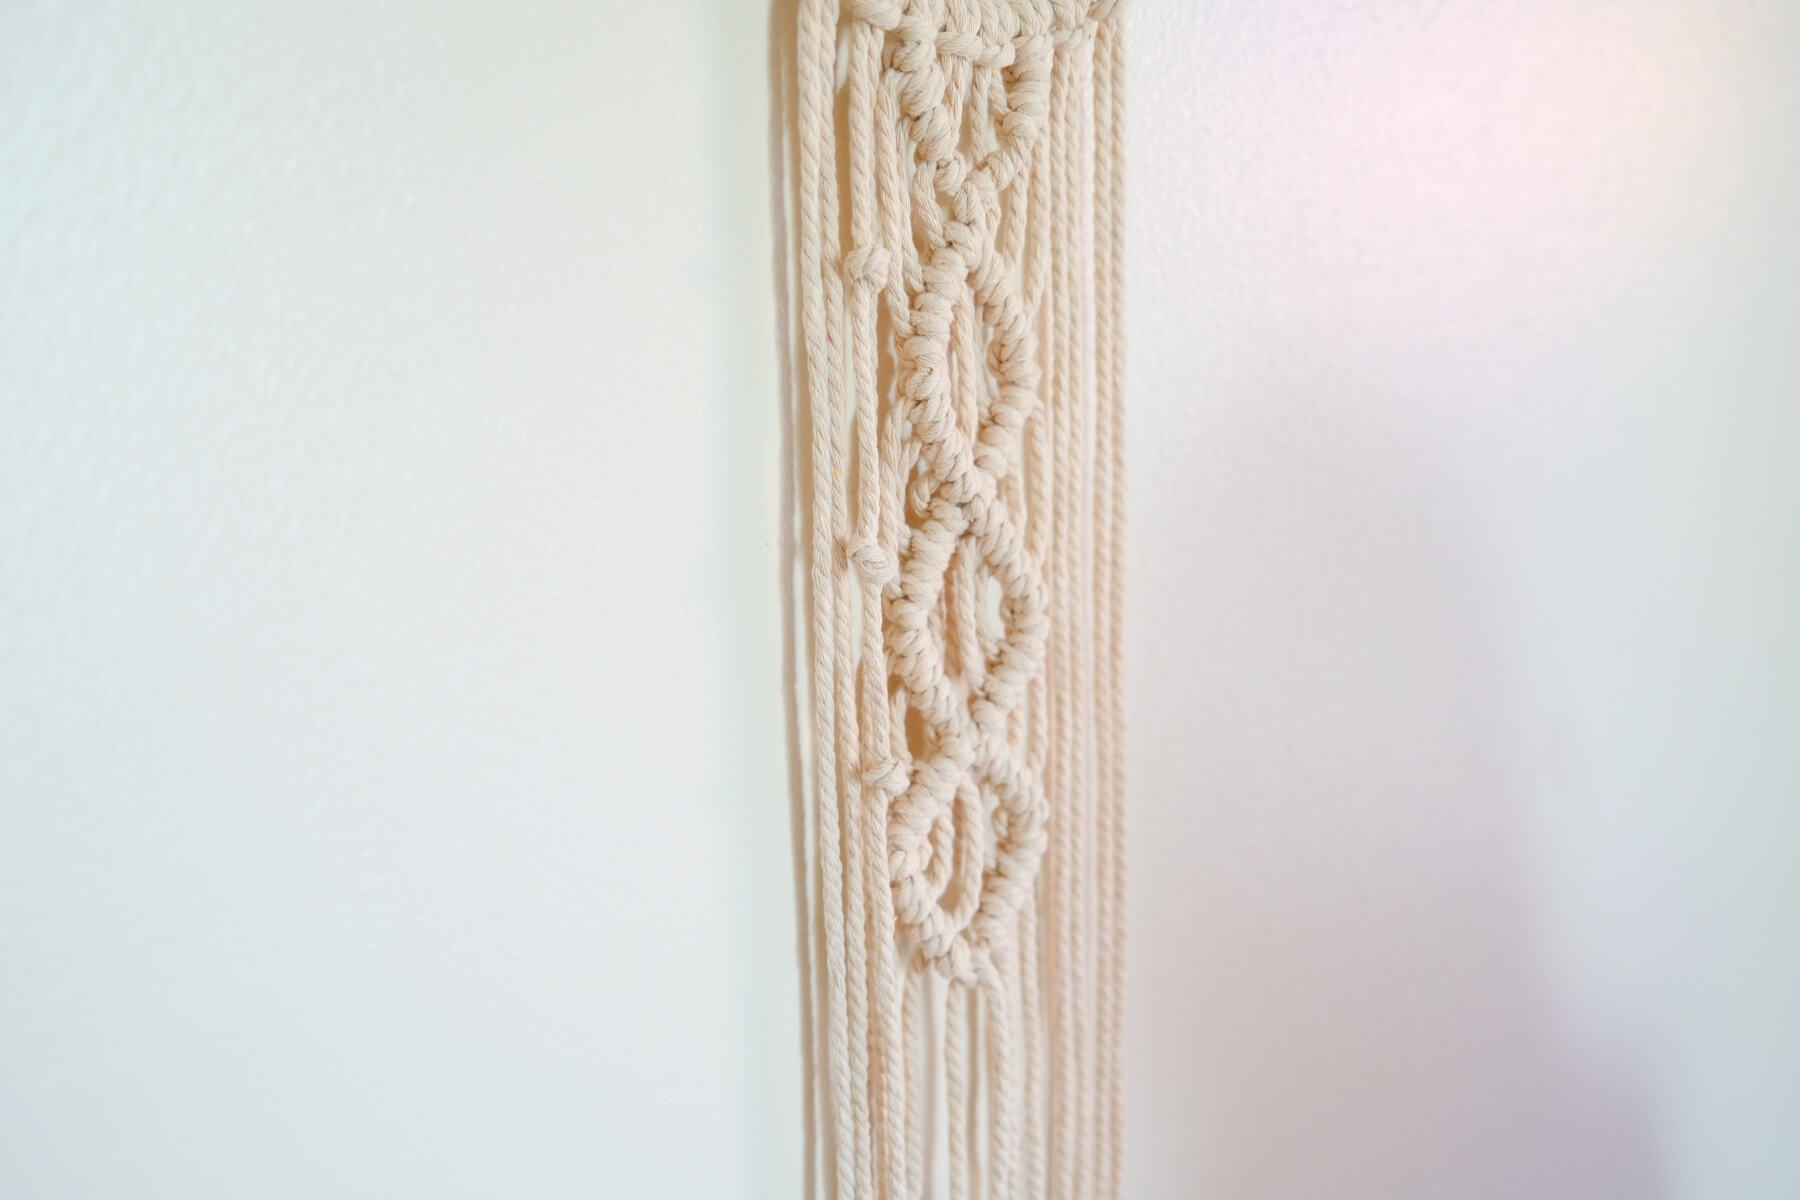 finished side of the macrame wall hanging